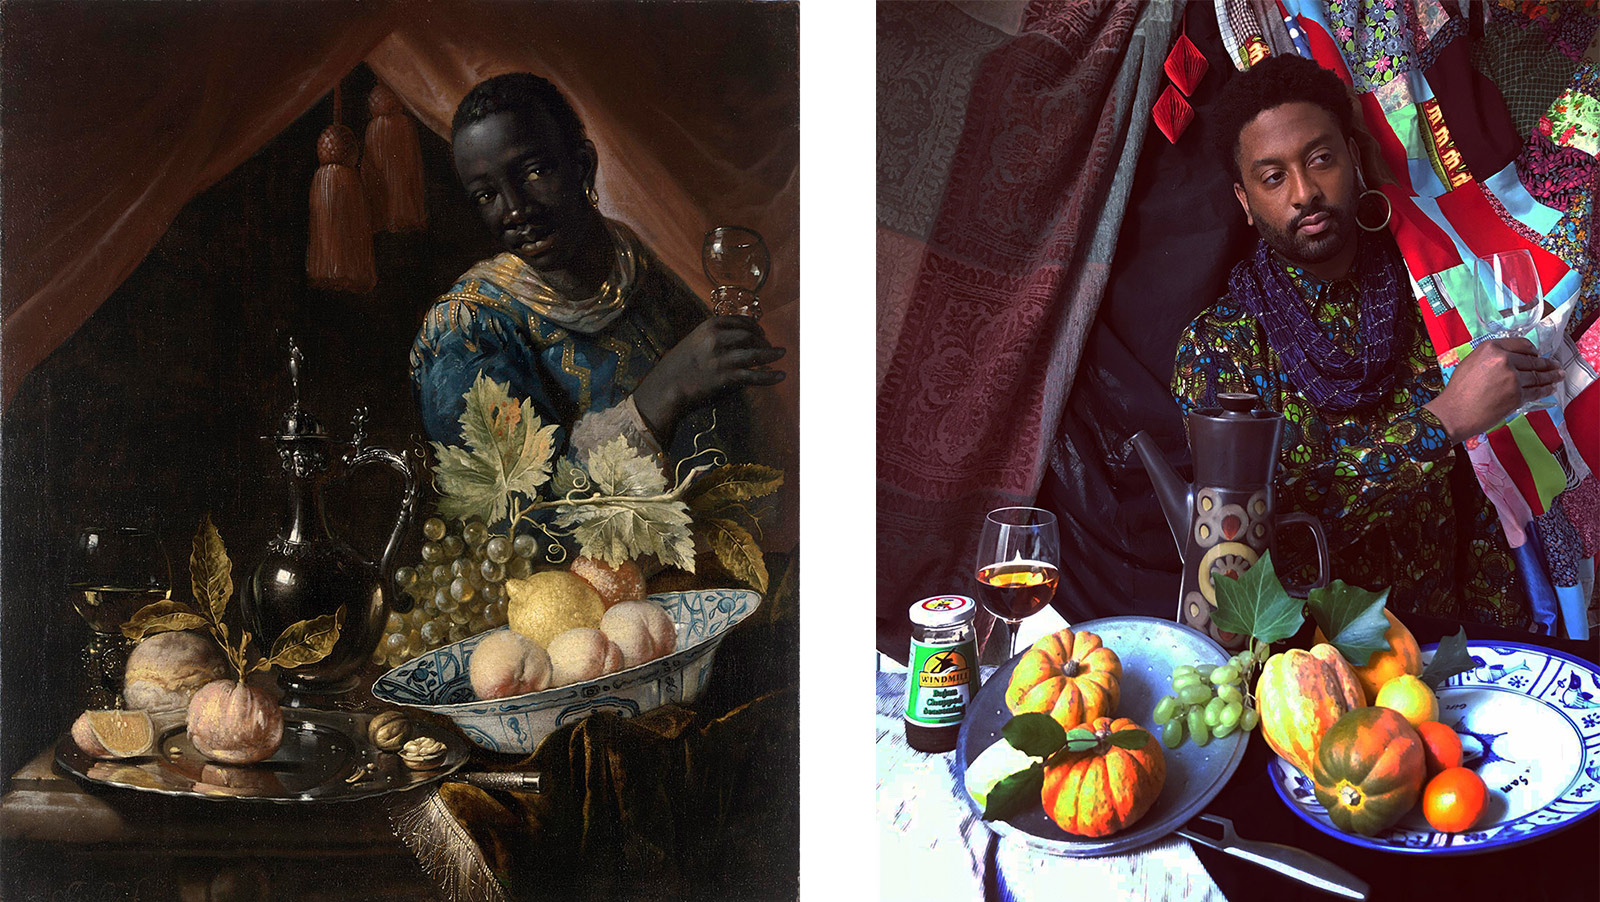 Left: A dark-skinned person stands behind a table laden with fruit and a tall pitcher. Right: Brathwaite stands with a quilt hanging over his left shoulder, holding an empty wine glass. The table in front of him holds squash, tomatoes, a food jar and a glass of wine.